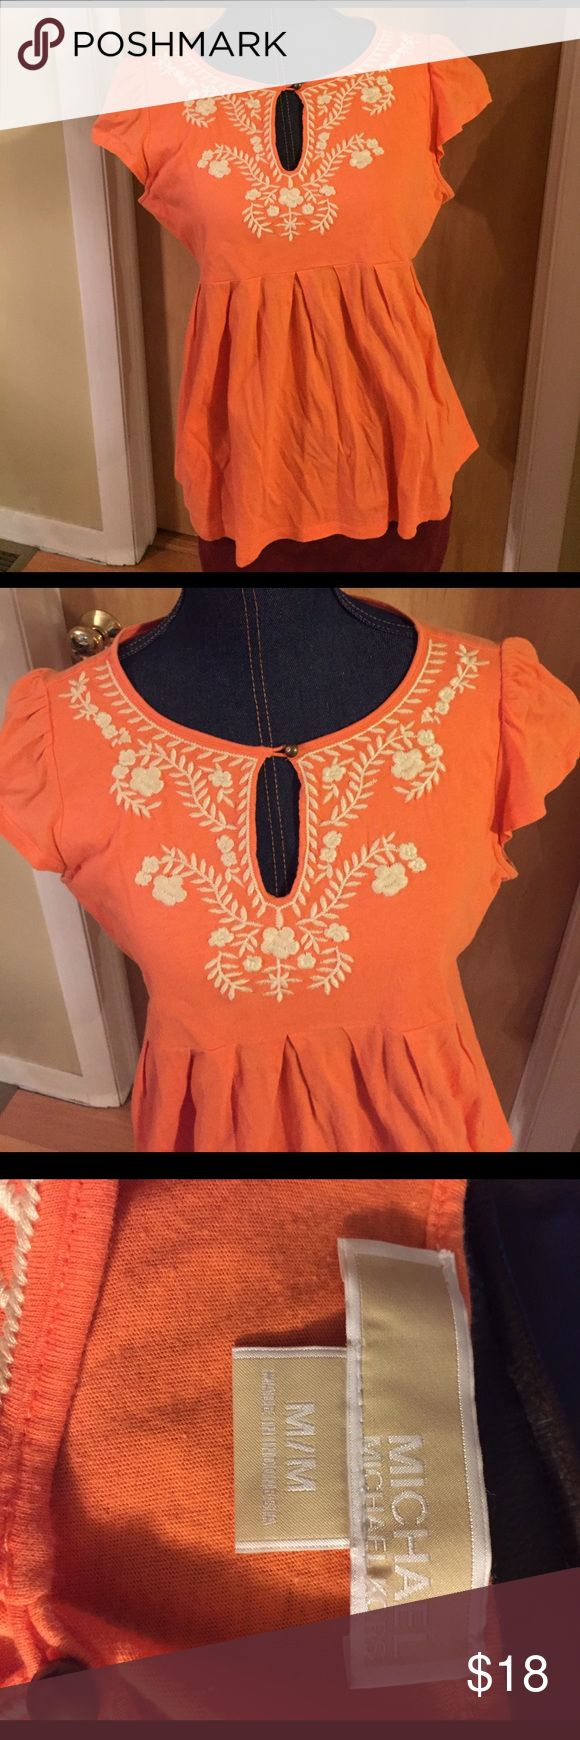 Michael Kors orange short sleeve shirt Cute orange Michael Kors shirt sleeve shirt with elegant neck line.  Clean and in great condition from a smoke free house! MICHAEL Michael Kors Tops Tees - Short Sleeve